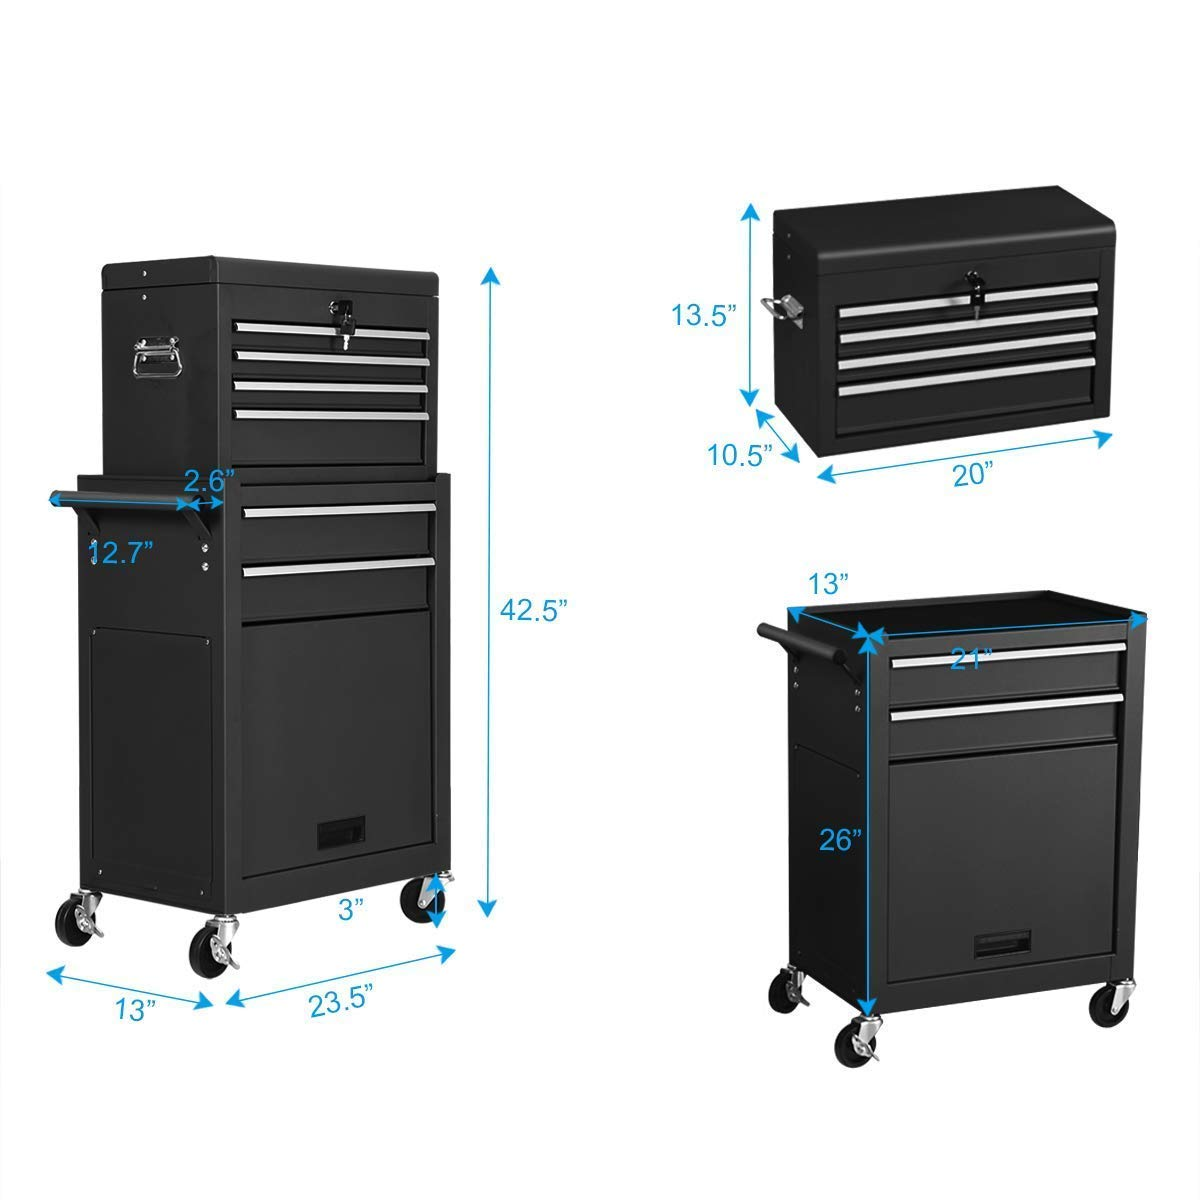 Goplus 6-Drawer Rolling Tool Chest Removable Tool Storage Cabinet with Sliding Drawers, Keyed Locking System Toolbox Organizer (Black) by Goplus (Image #4)